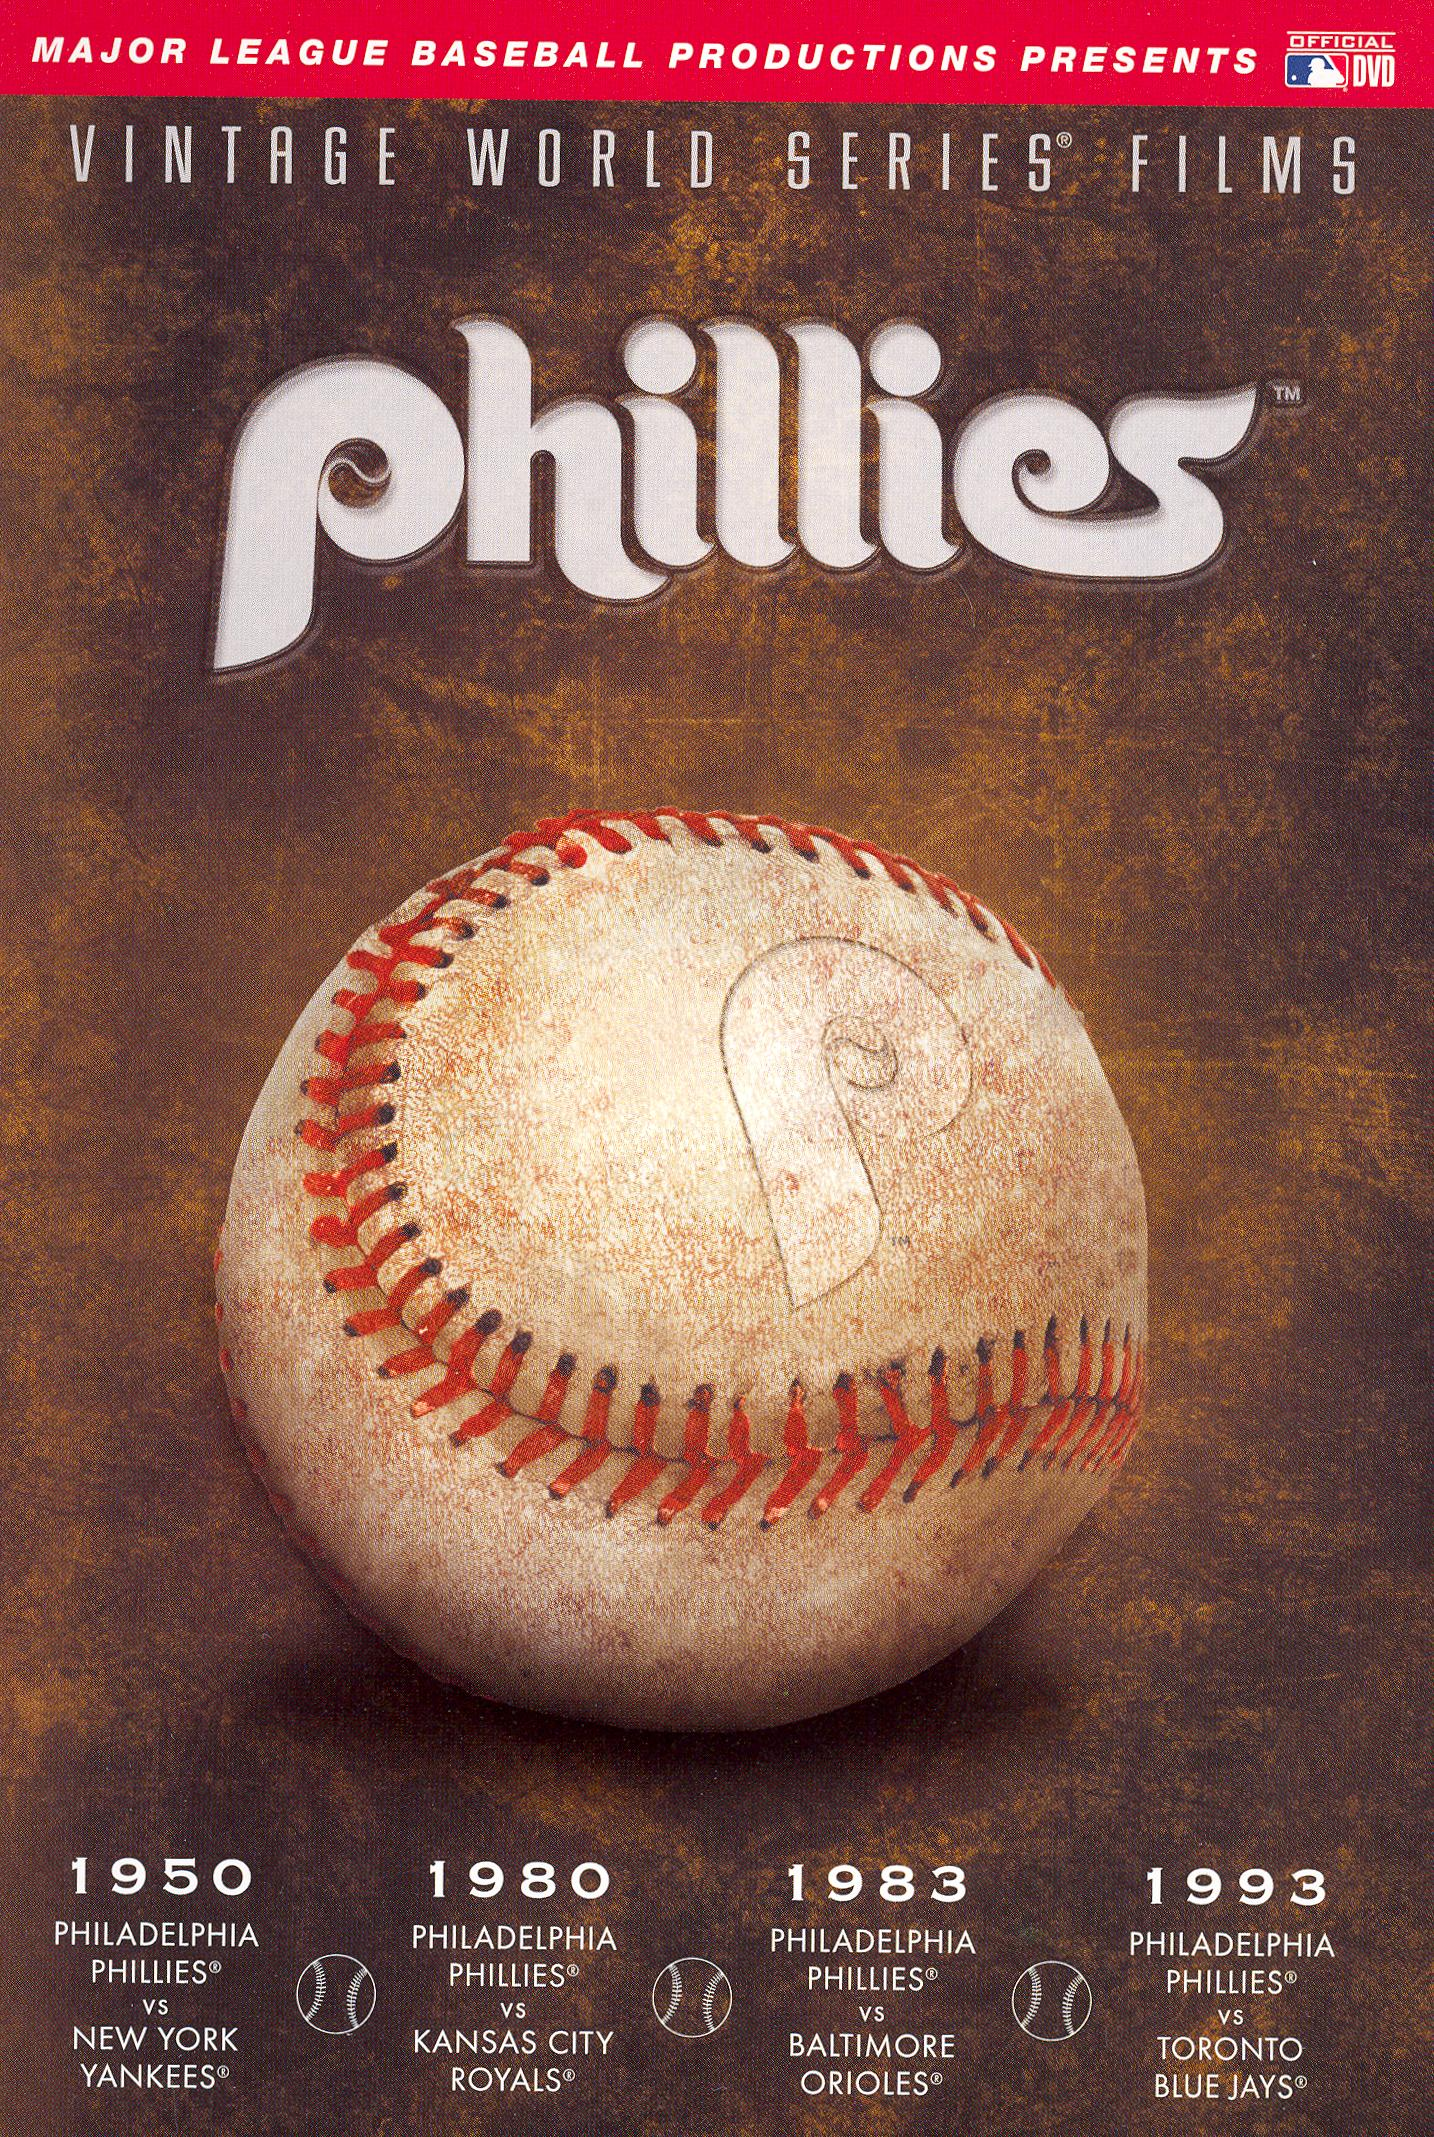 Philadelphia Phillies: World Series Vintage Films